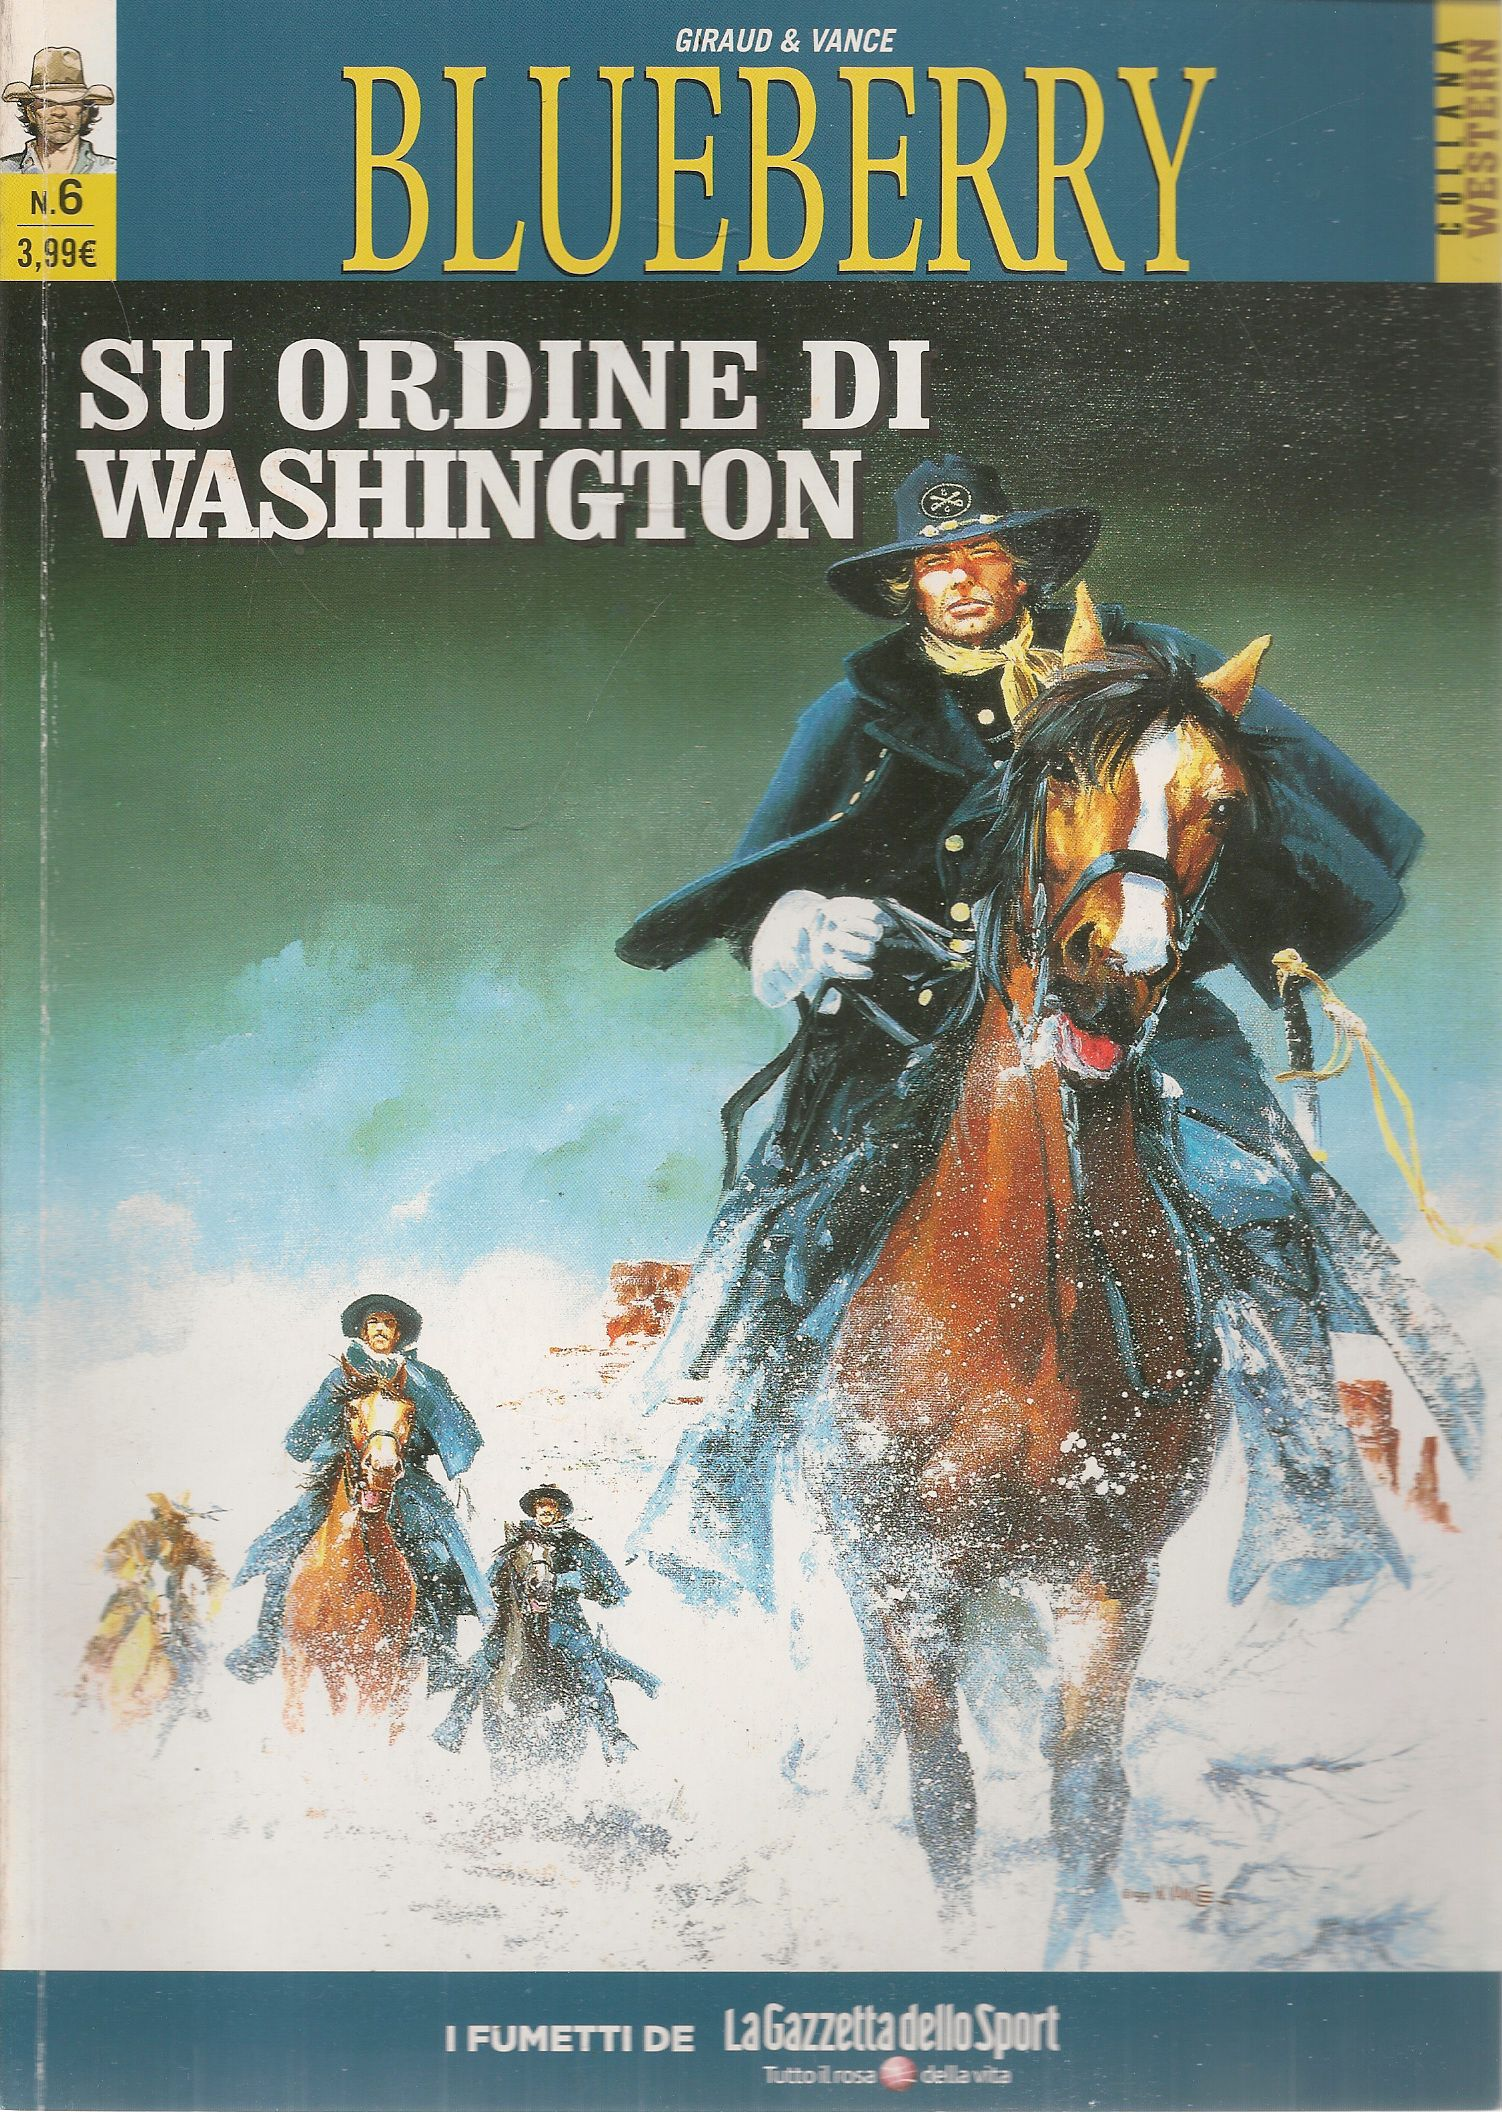 BLUEBERRY N. 6 - SU ORDINE DI WASHIMNGTON